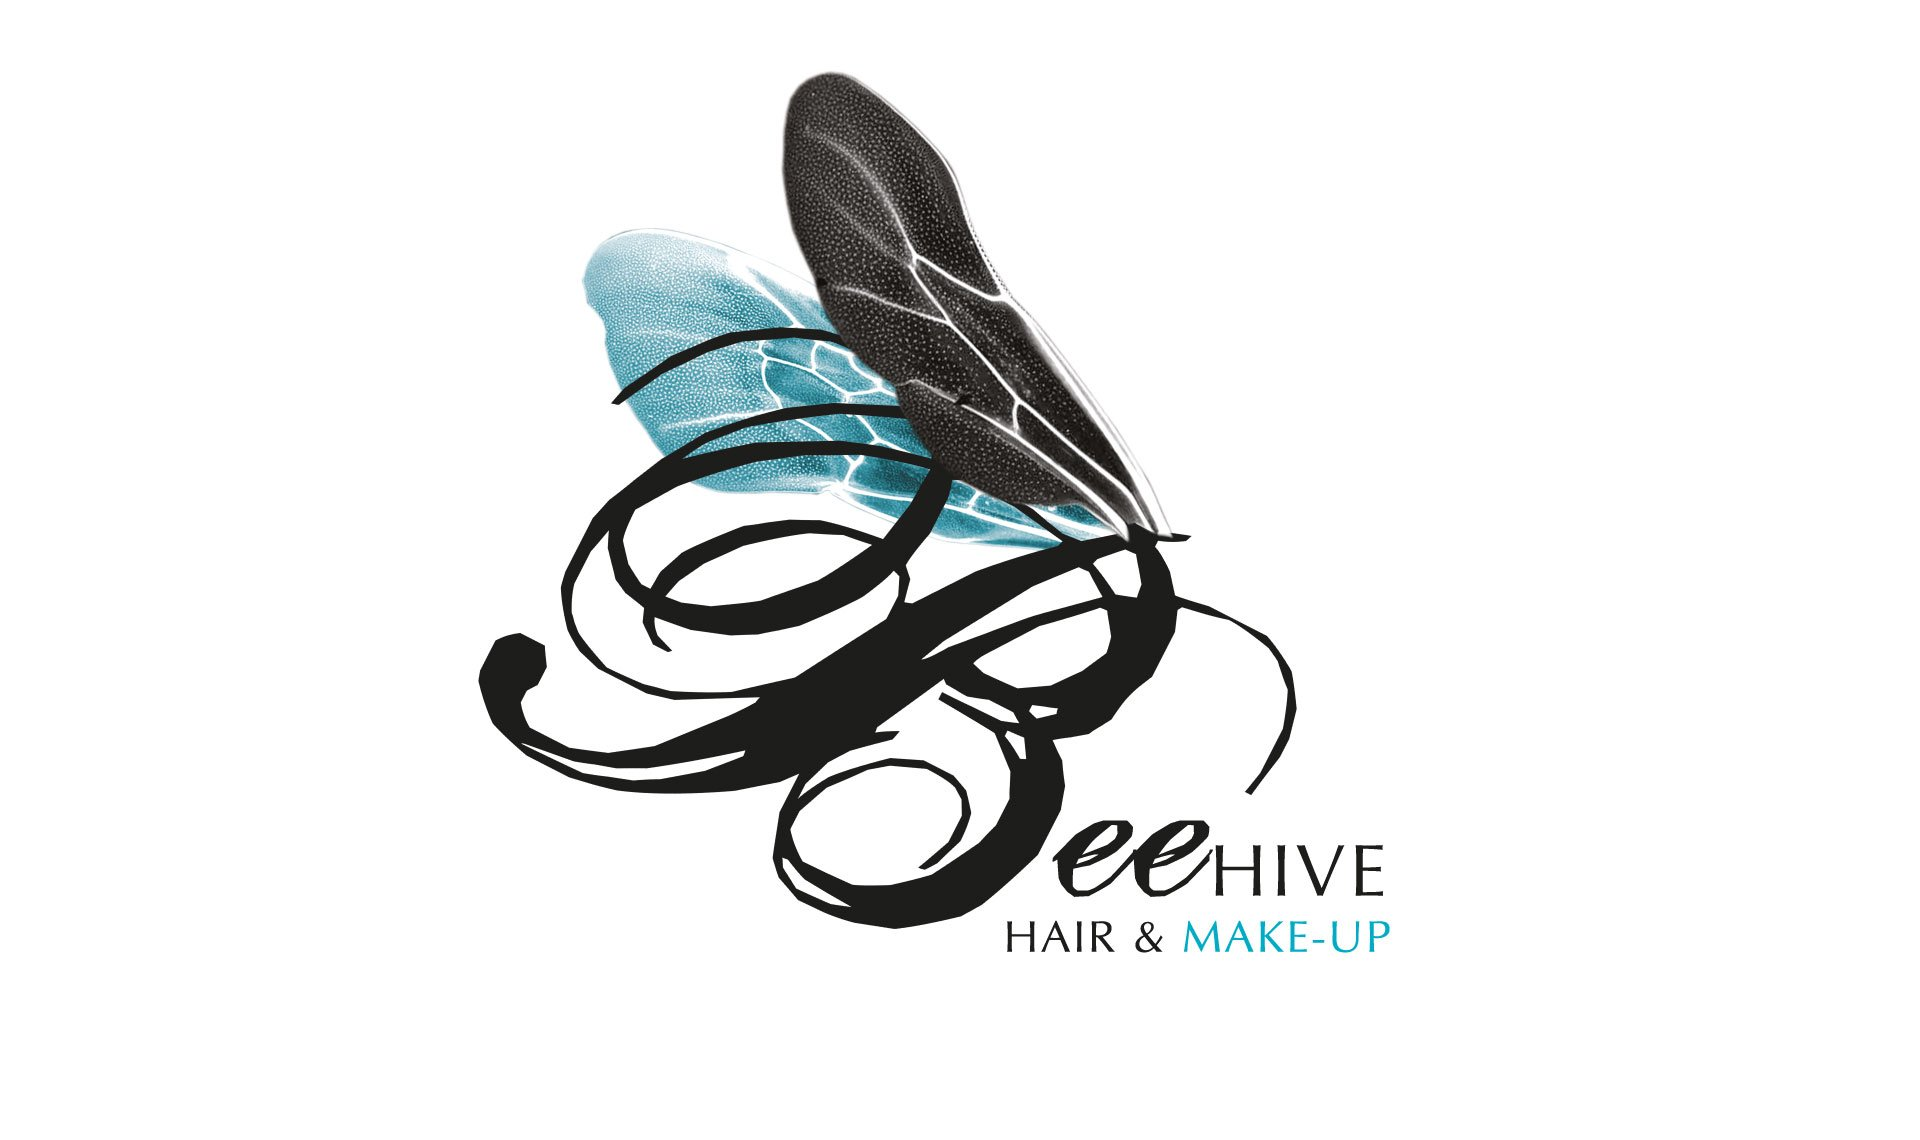 Beehive logo is the letter B with Insect wings